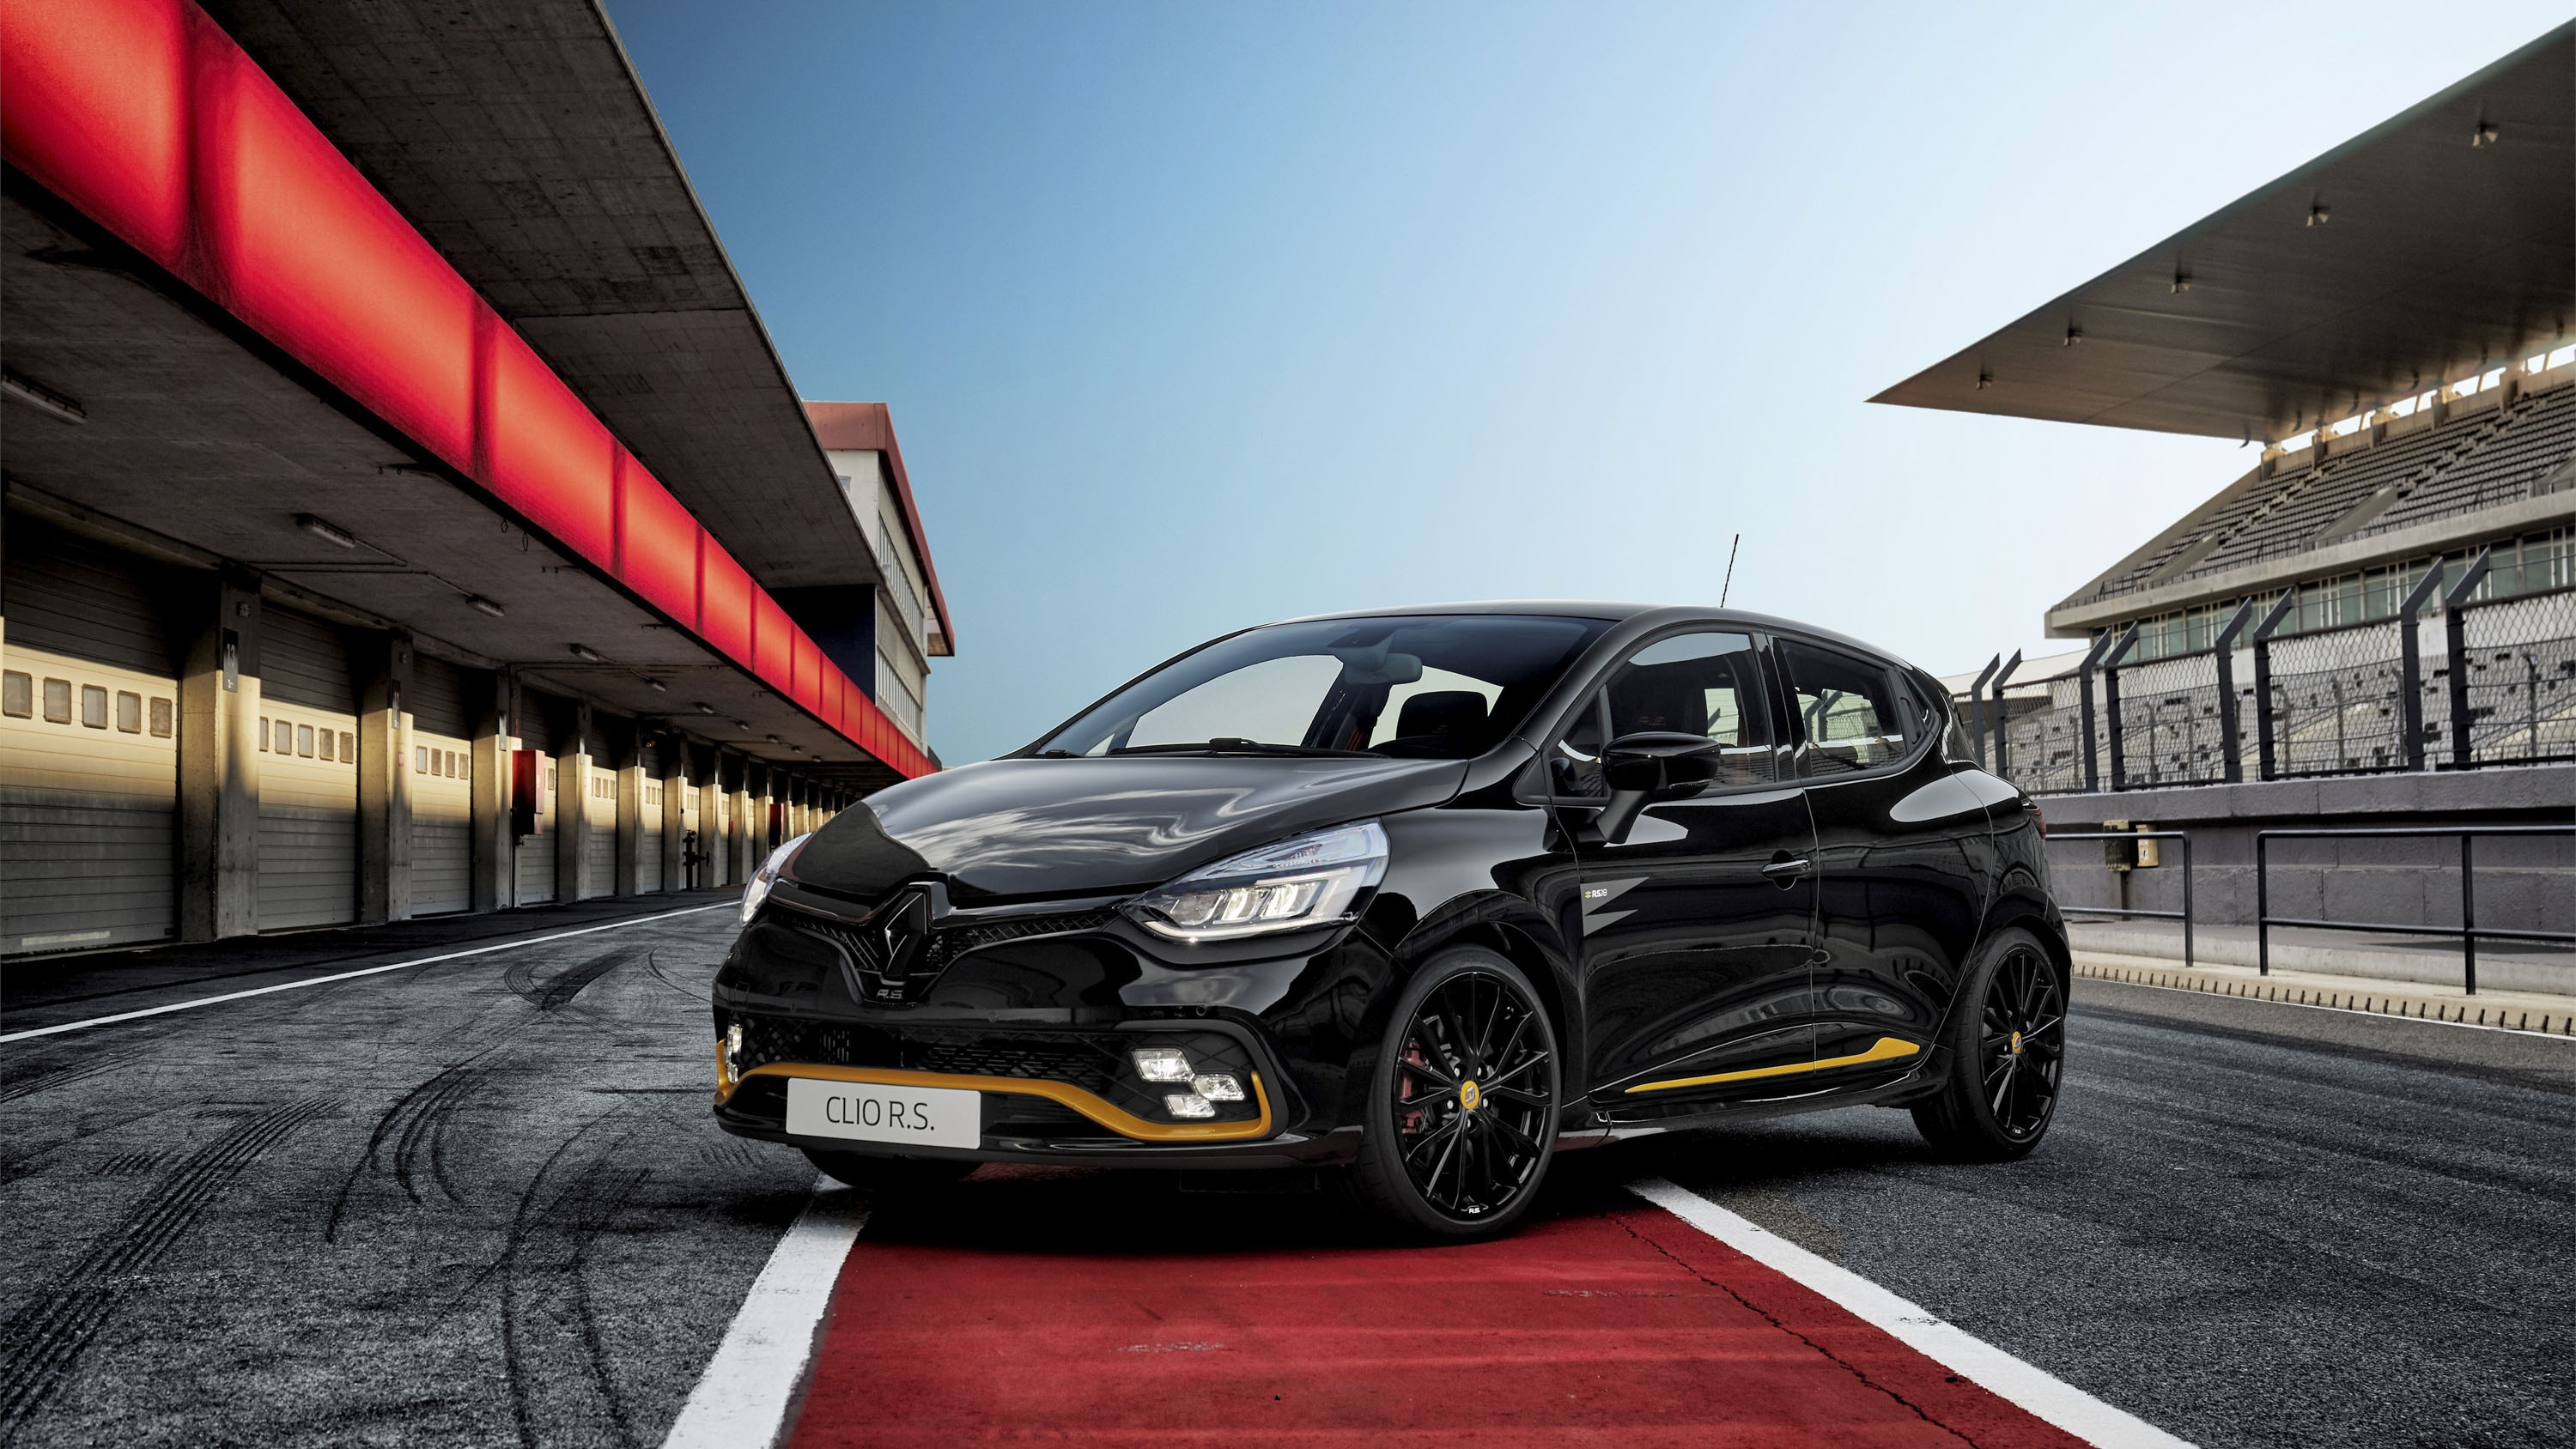 Wallpaper Of The Day 2018 Renault Clio R S 18 Pictures Photos